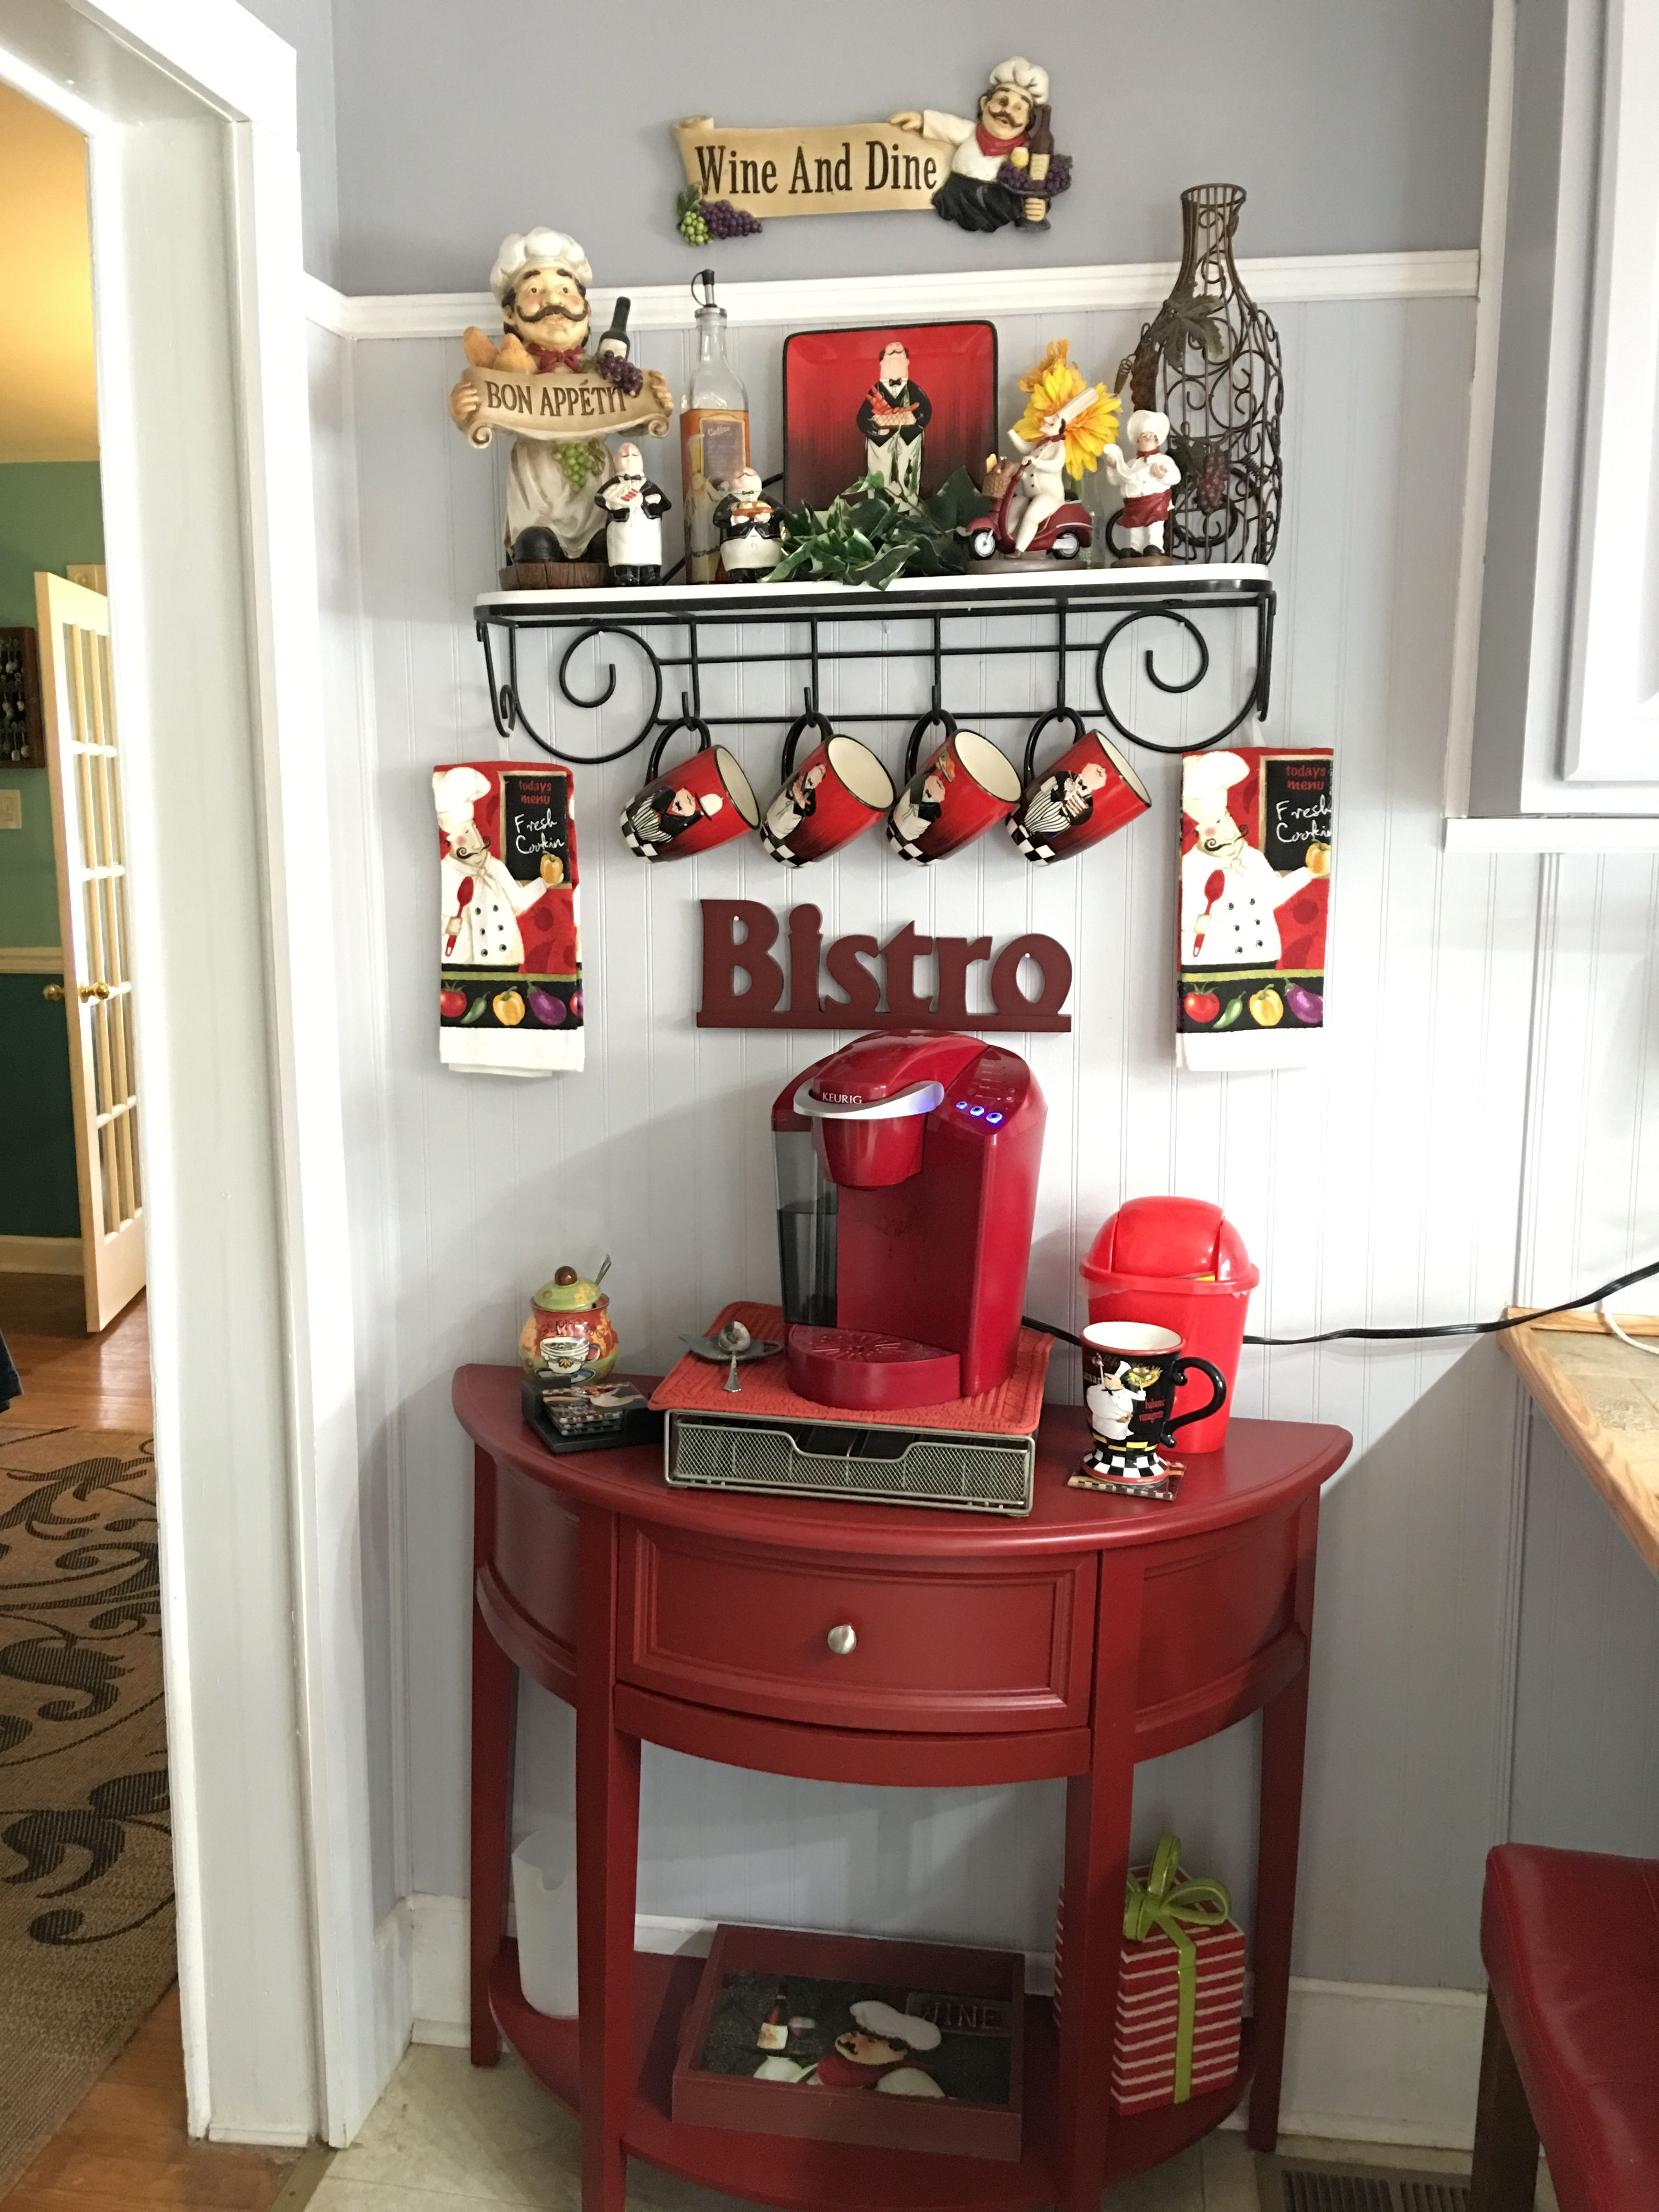 Best ideas about Kitchen Decor Theme Ideas . Save or Pin Chef bistro decor home Now.